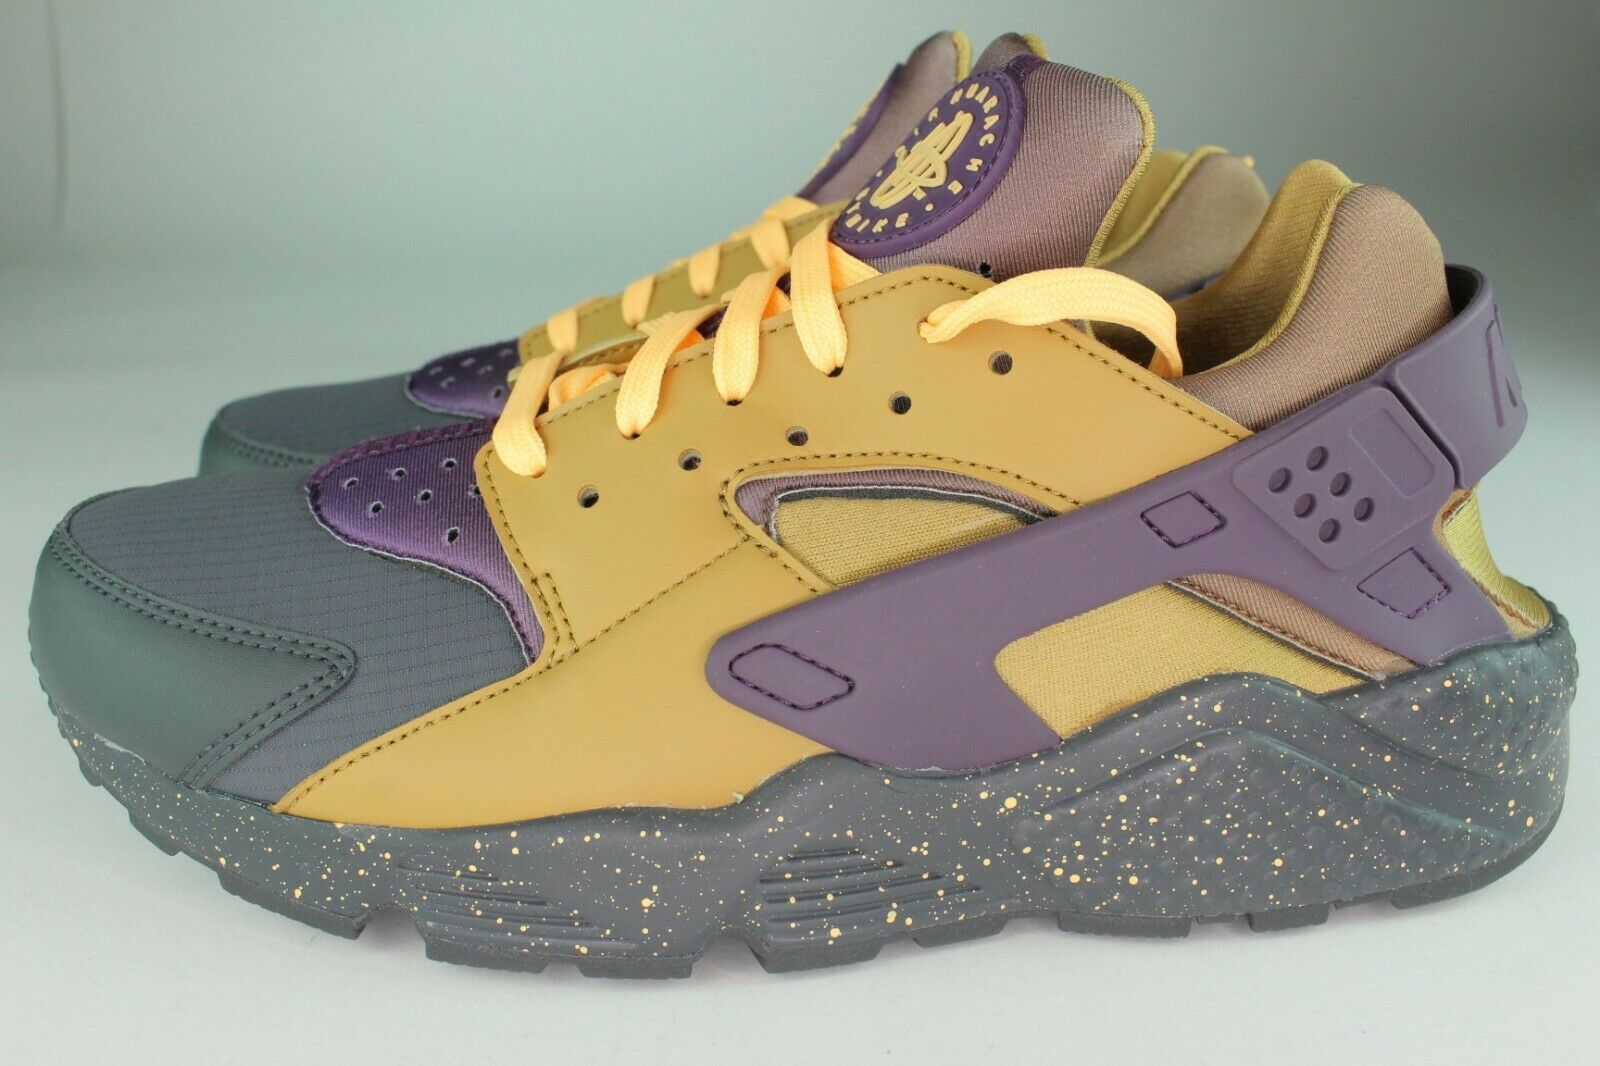 innovative design 41164 9cd63 NIKE AIR HUARACHE RUN PREMIUM MEN SIZE 10.0 10.0 10.0 NEW TINKER HATFIELD  COMFORTABLE ba4308